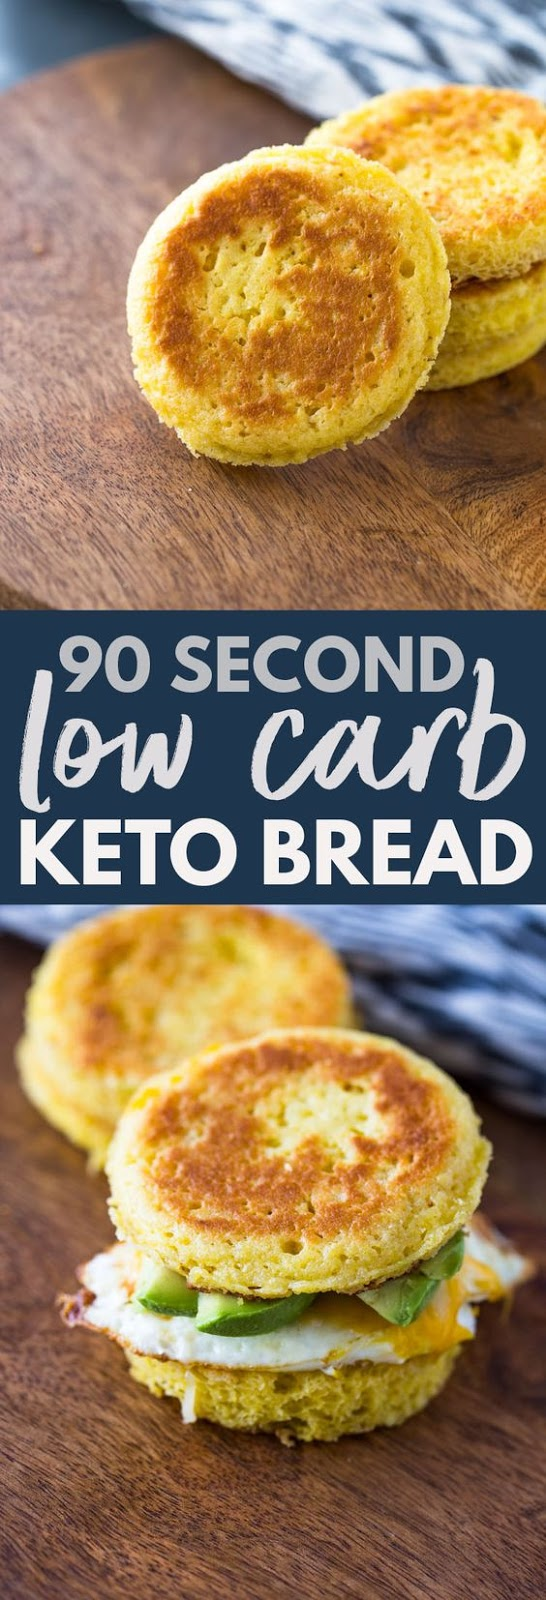 90 Second Low Carb Keto Bread